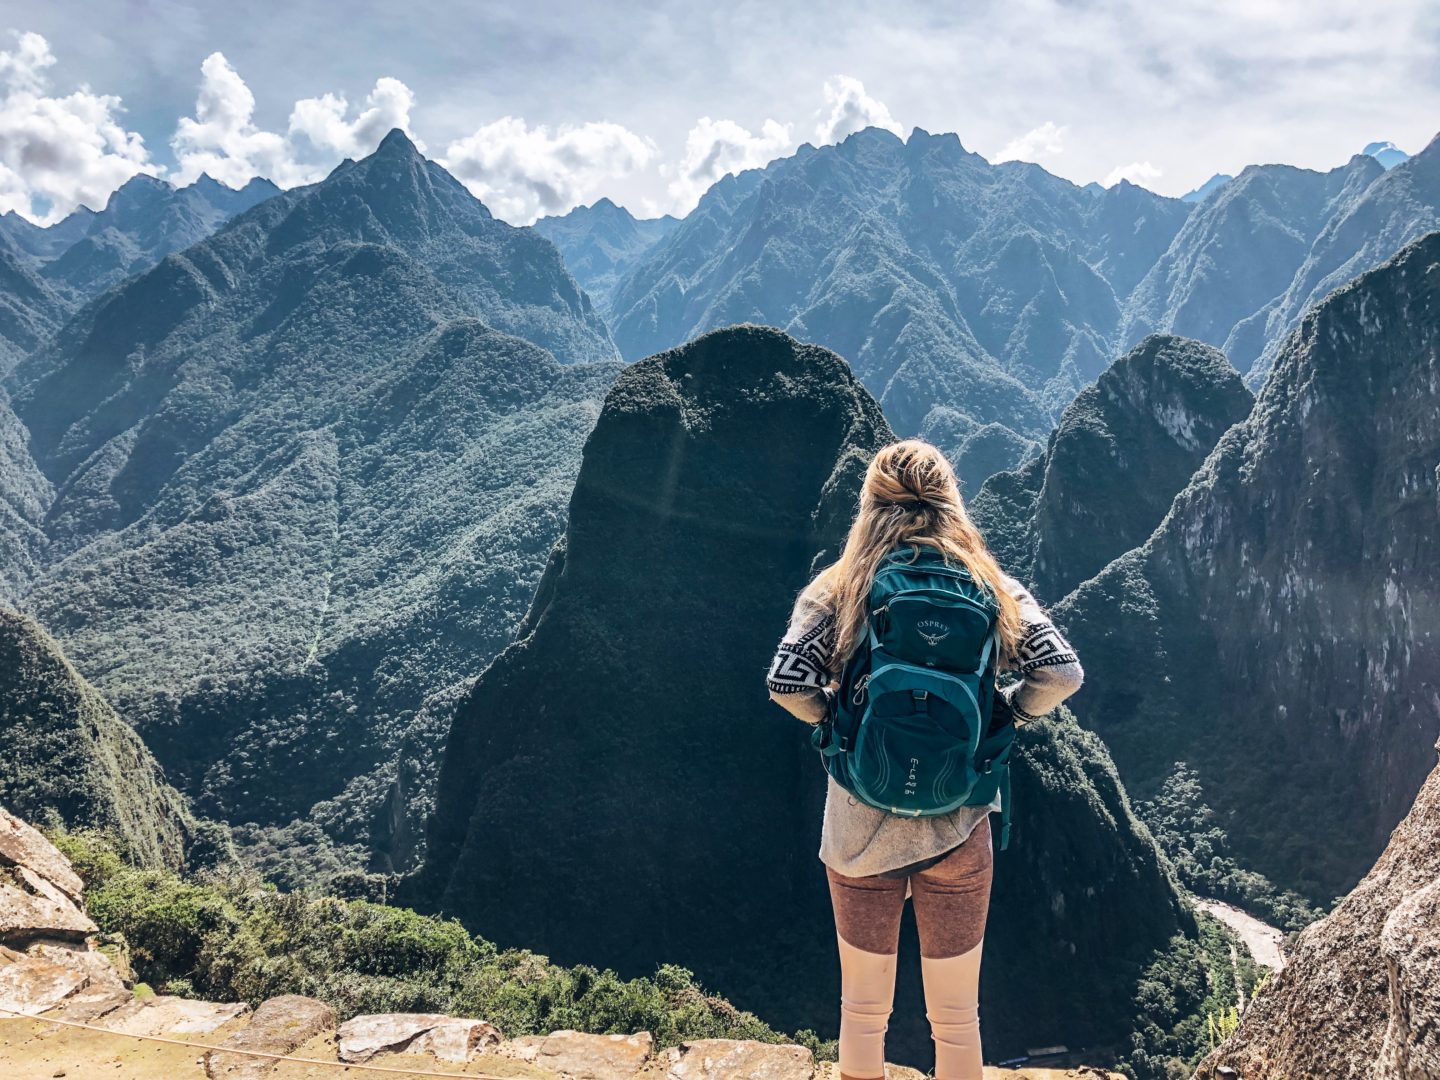 """The kind of views you don't see when you google """"Machu Picchu"""". Breathtaking views of the mountains surrounding the historical site of Machu Picchu."""